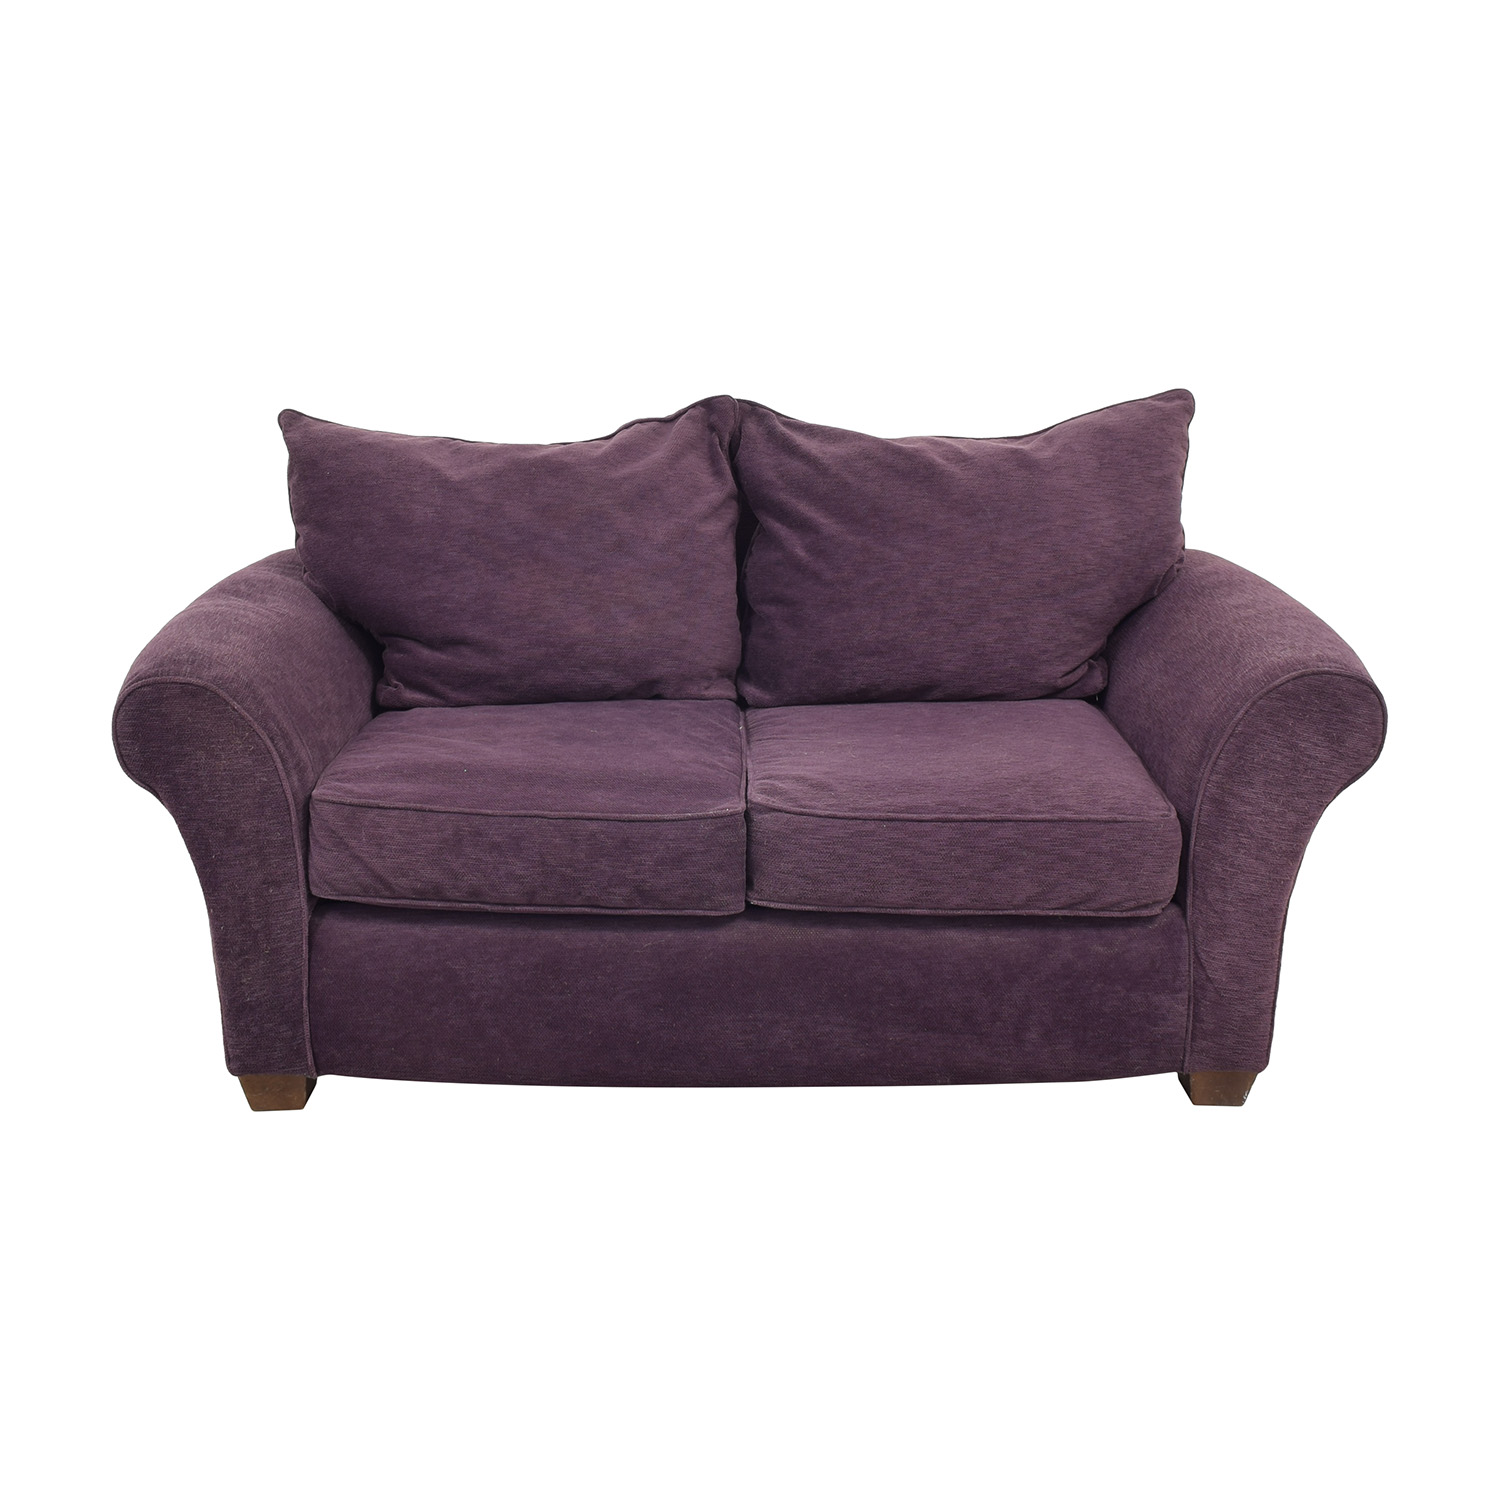 shop Alan White Roll Arm Loveseat Alan White Sofas